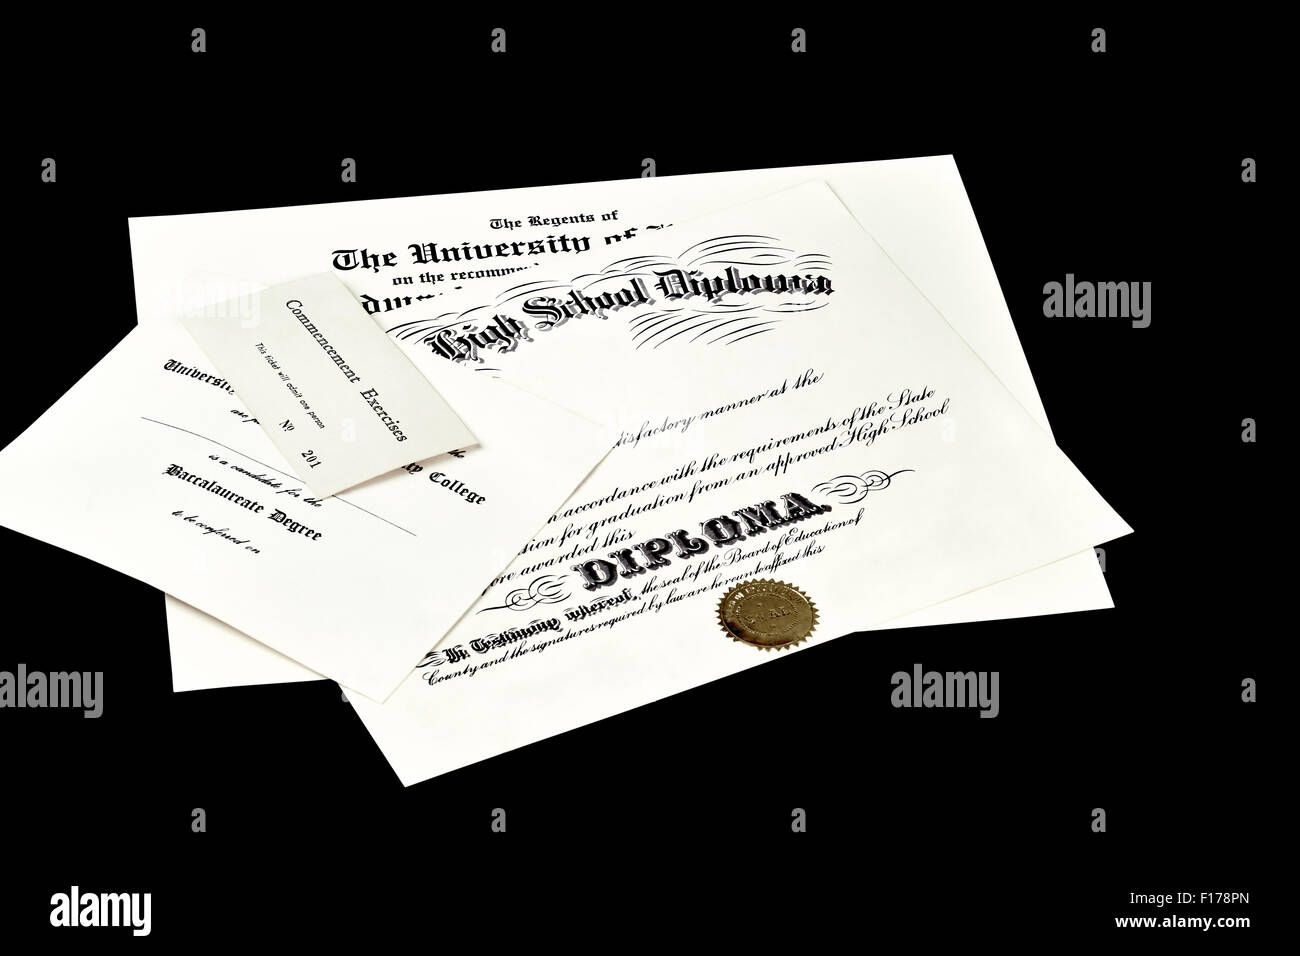 Education certification documents including high school diploma,commencement ticket, and university degree isolated - Stock Image